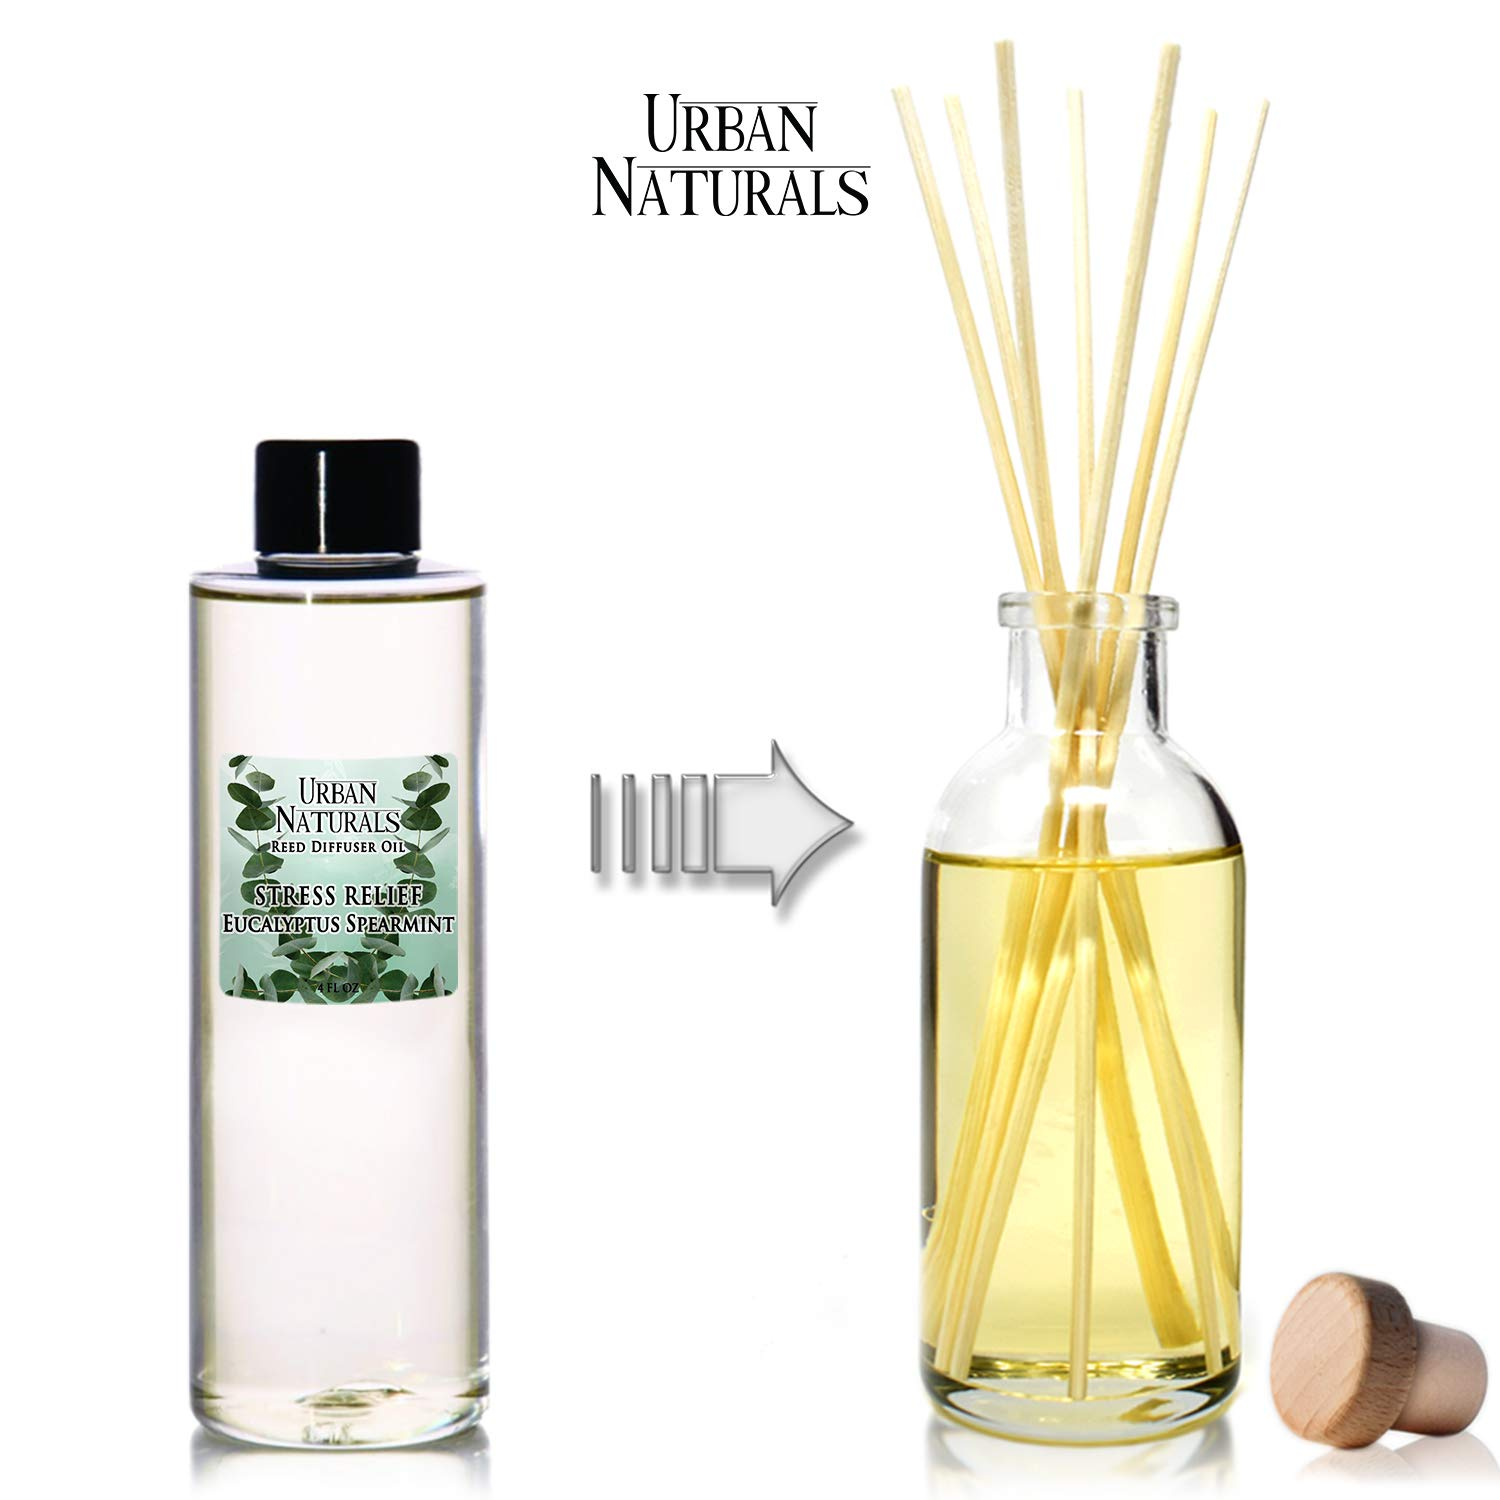 Urban Naturals Stress Relief Eucalyptus Spearmint Reed Diffuser Oil Refill | Fill Your own DIY Diffuser Bottle! Includes Replacement Reed Sticks by Urban Naturals (Image #3)